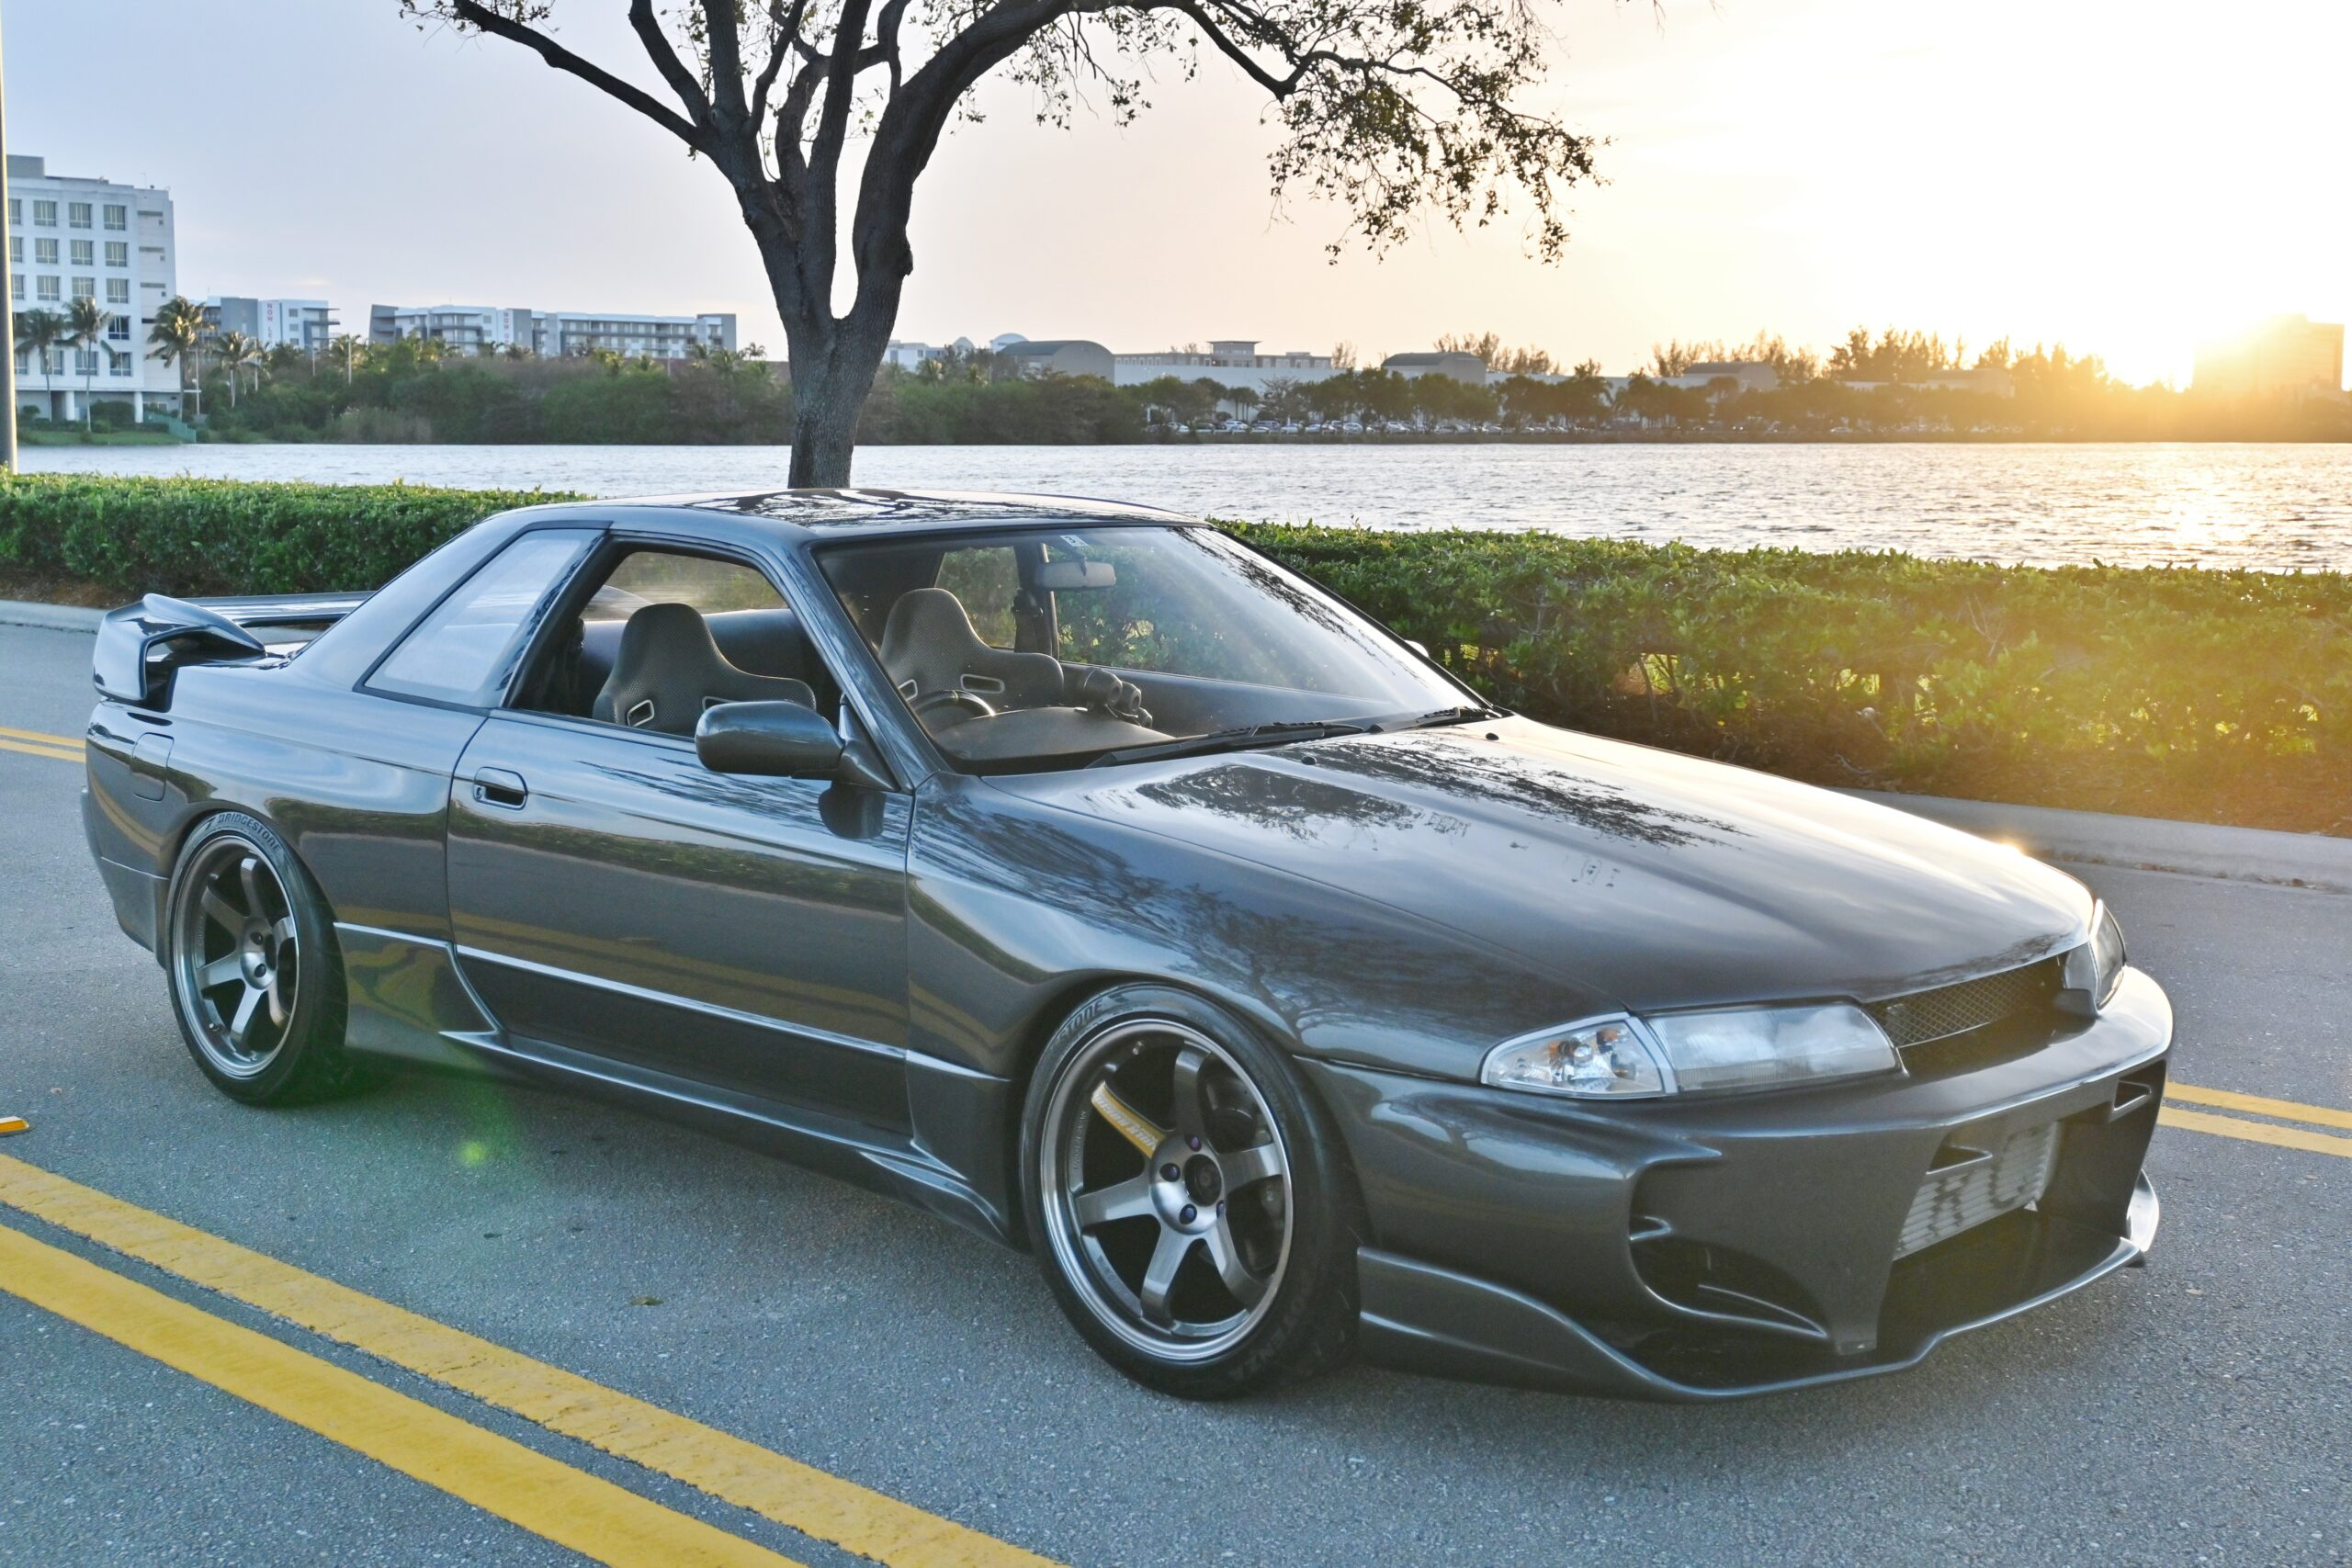 1990 Nissan GT-R R32 Skyline 1 Owner | Authentic Veilside Kit | Well Sorted | Aragosta | TE37 | 89k Orig. Km